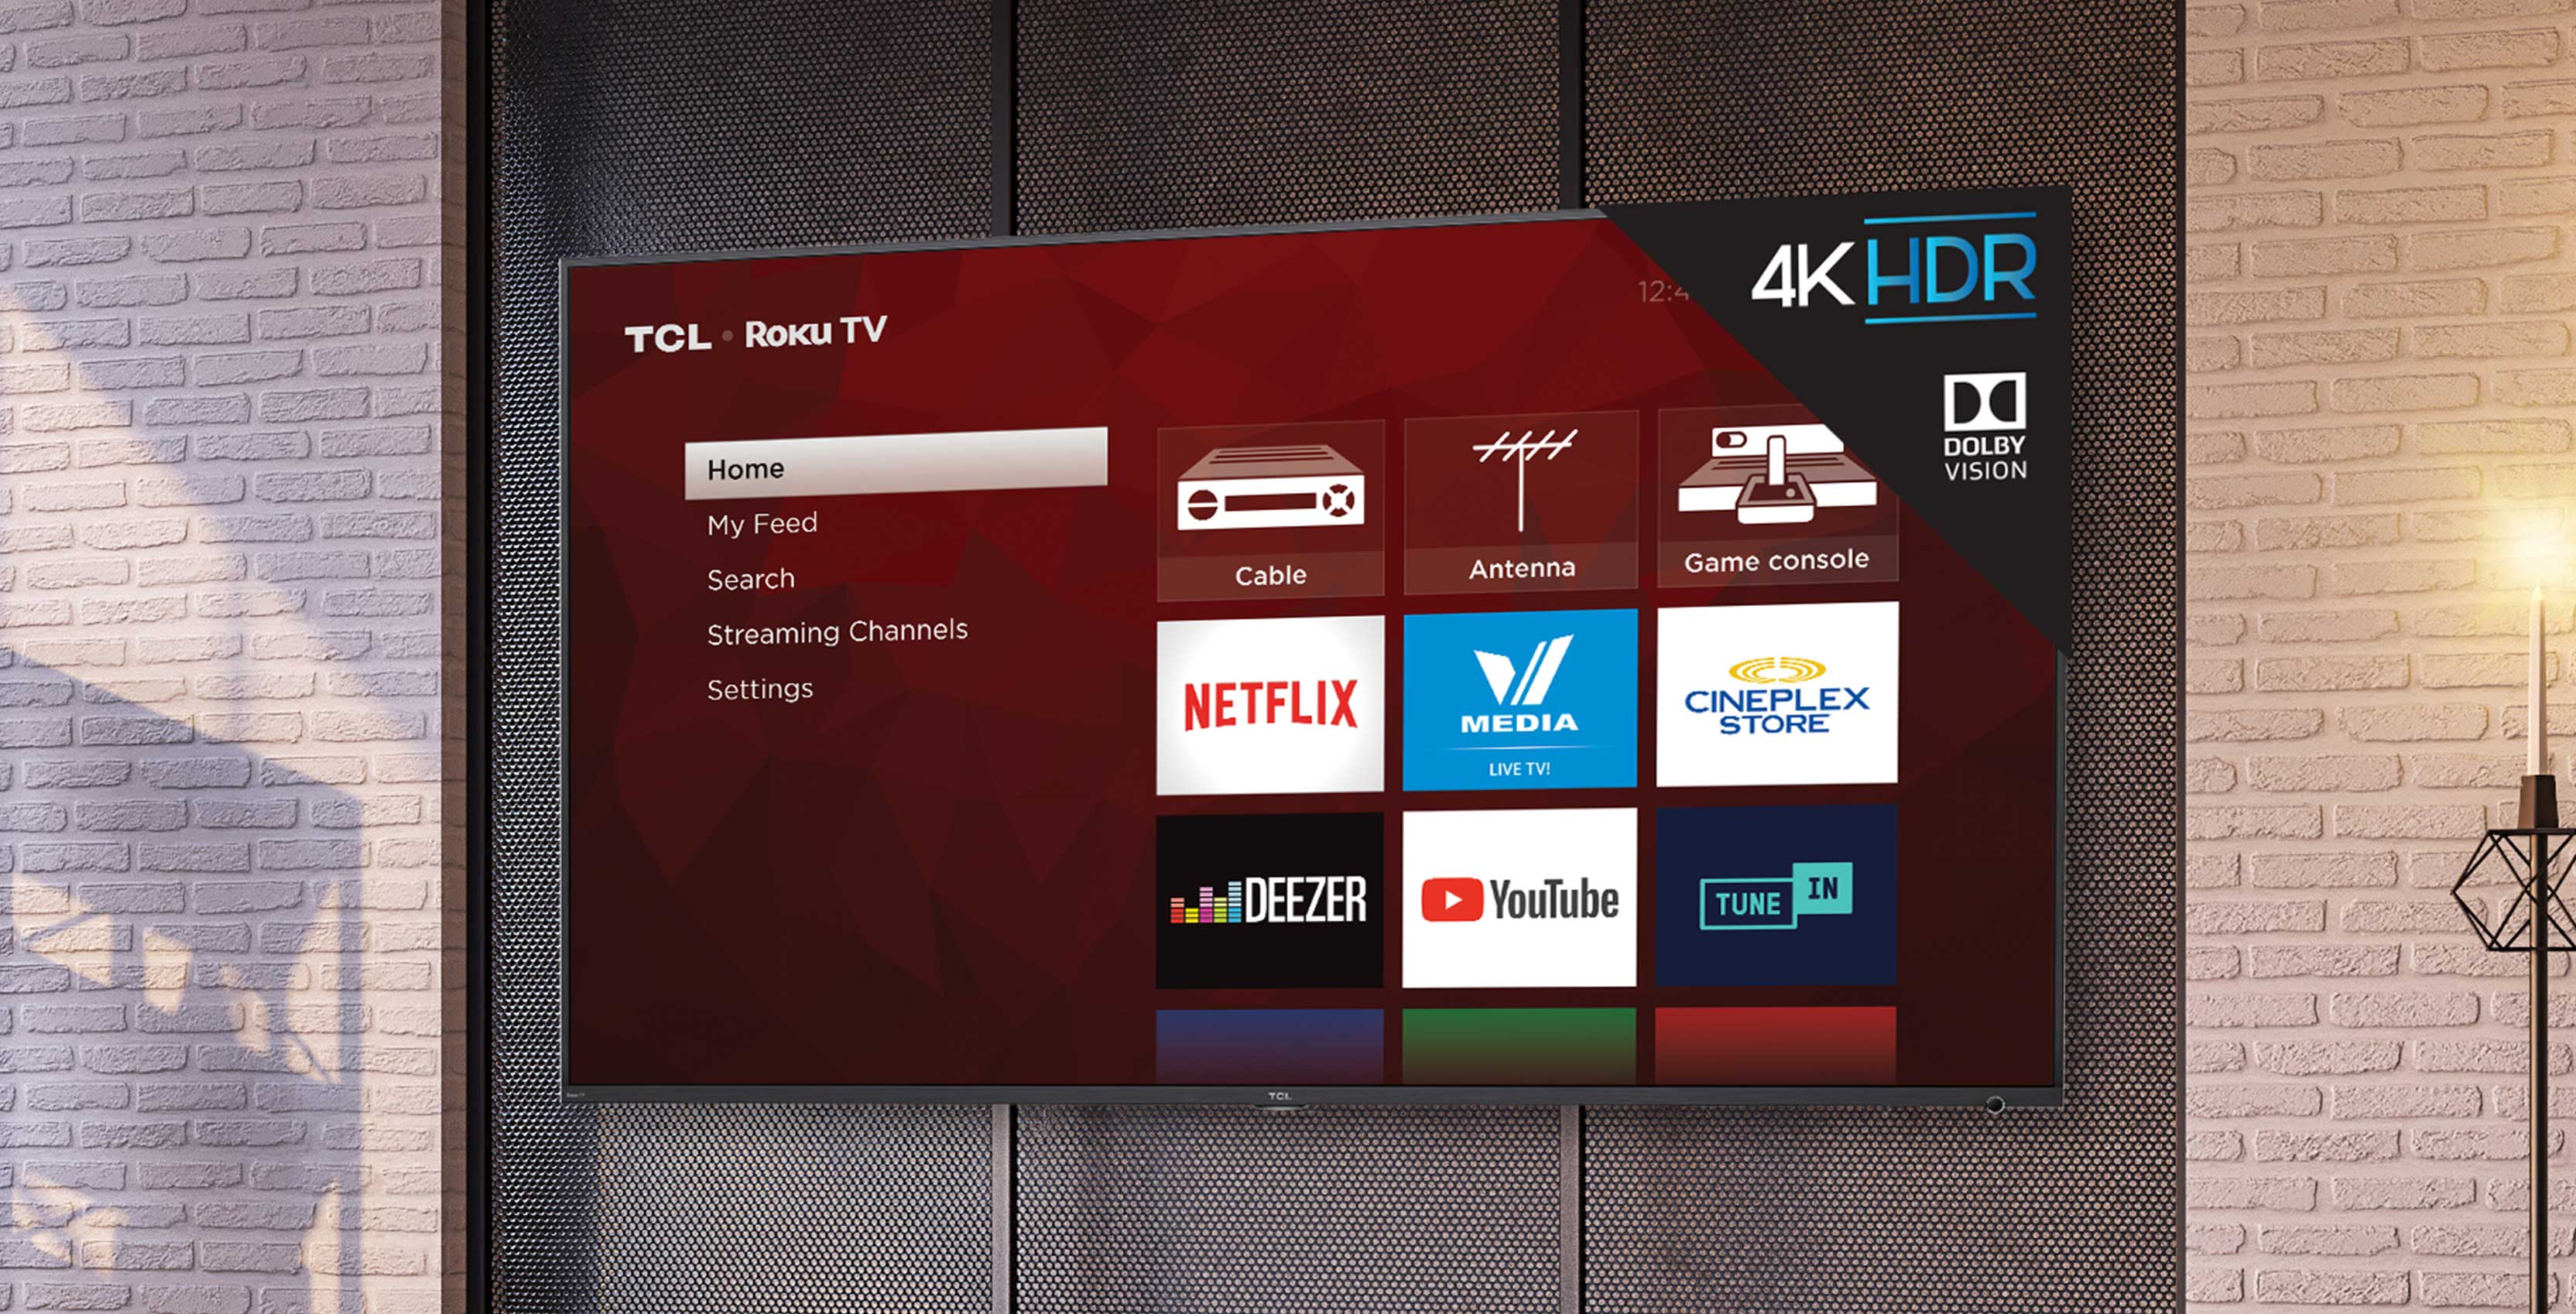 TCL is finally bringing its highly rated Roku TVs to Canada